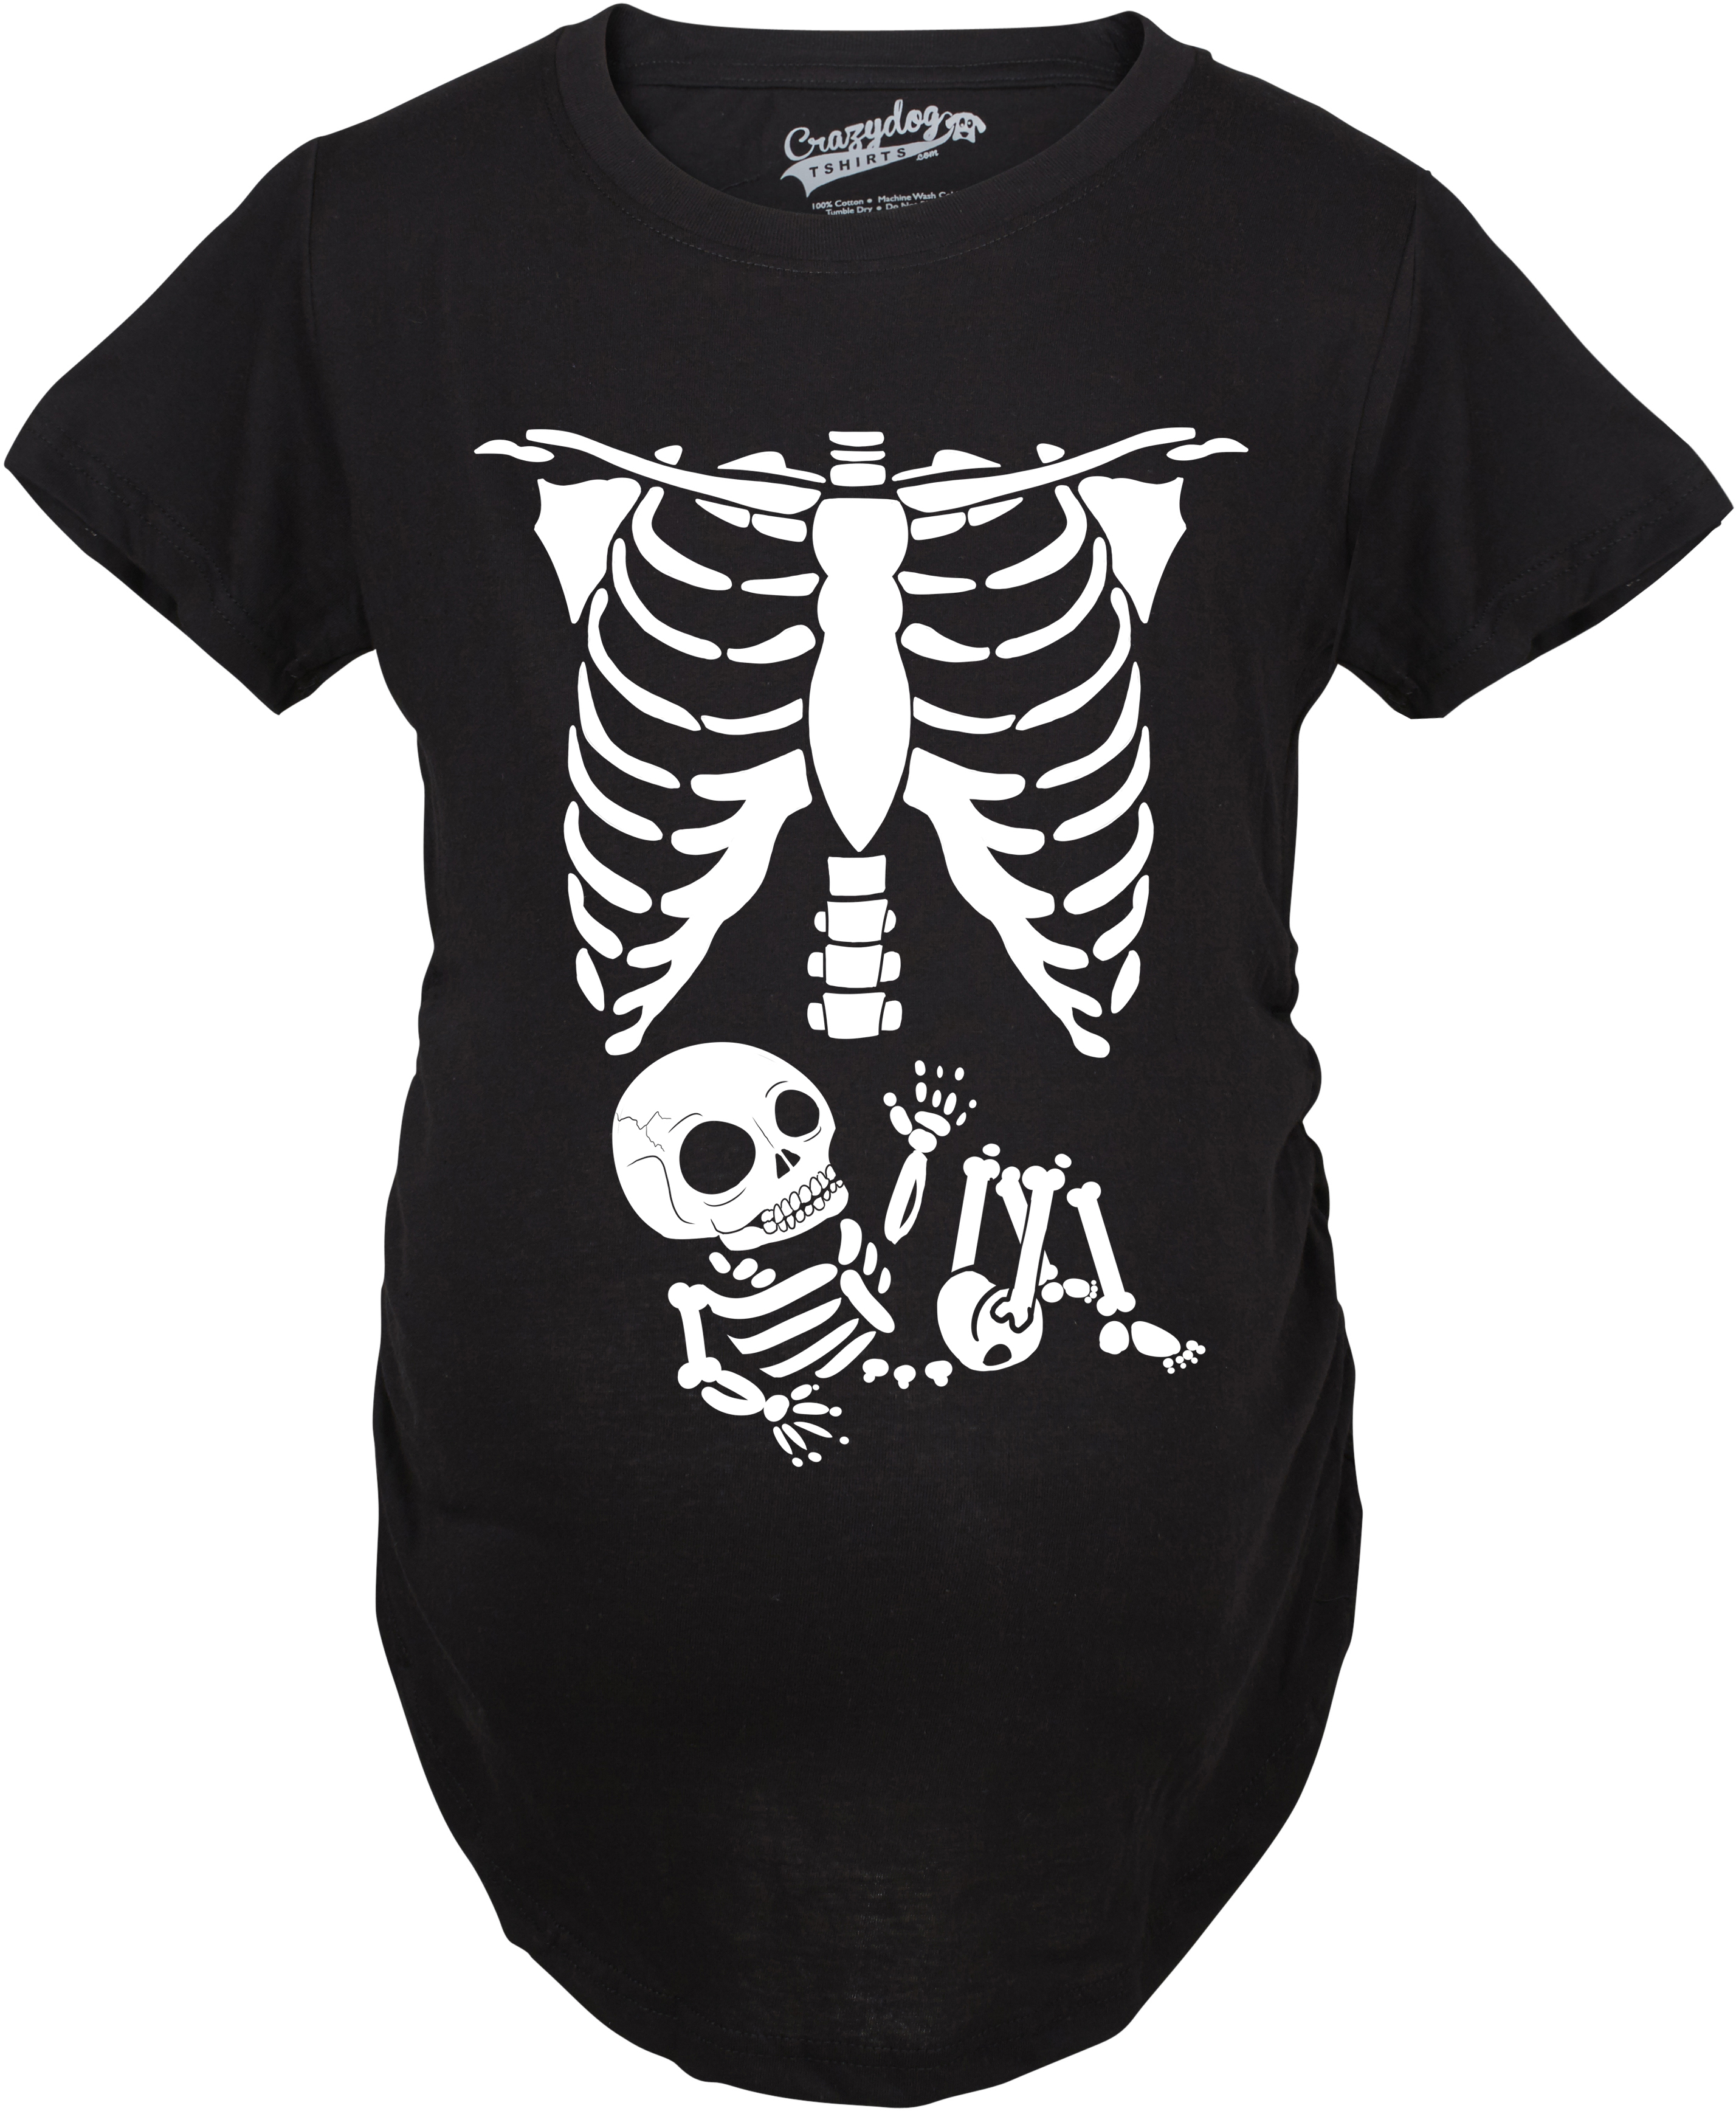 Crazy Dog TShirts - Maternity Skeleton Baby T Shirt Halloween Costume Funny Pregnancy Tee For Mothers